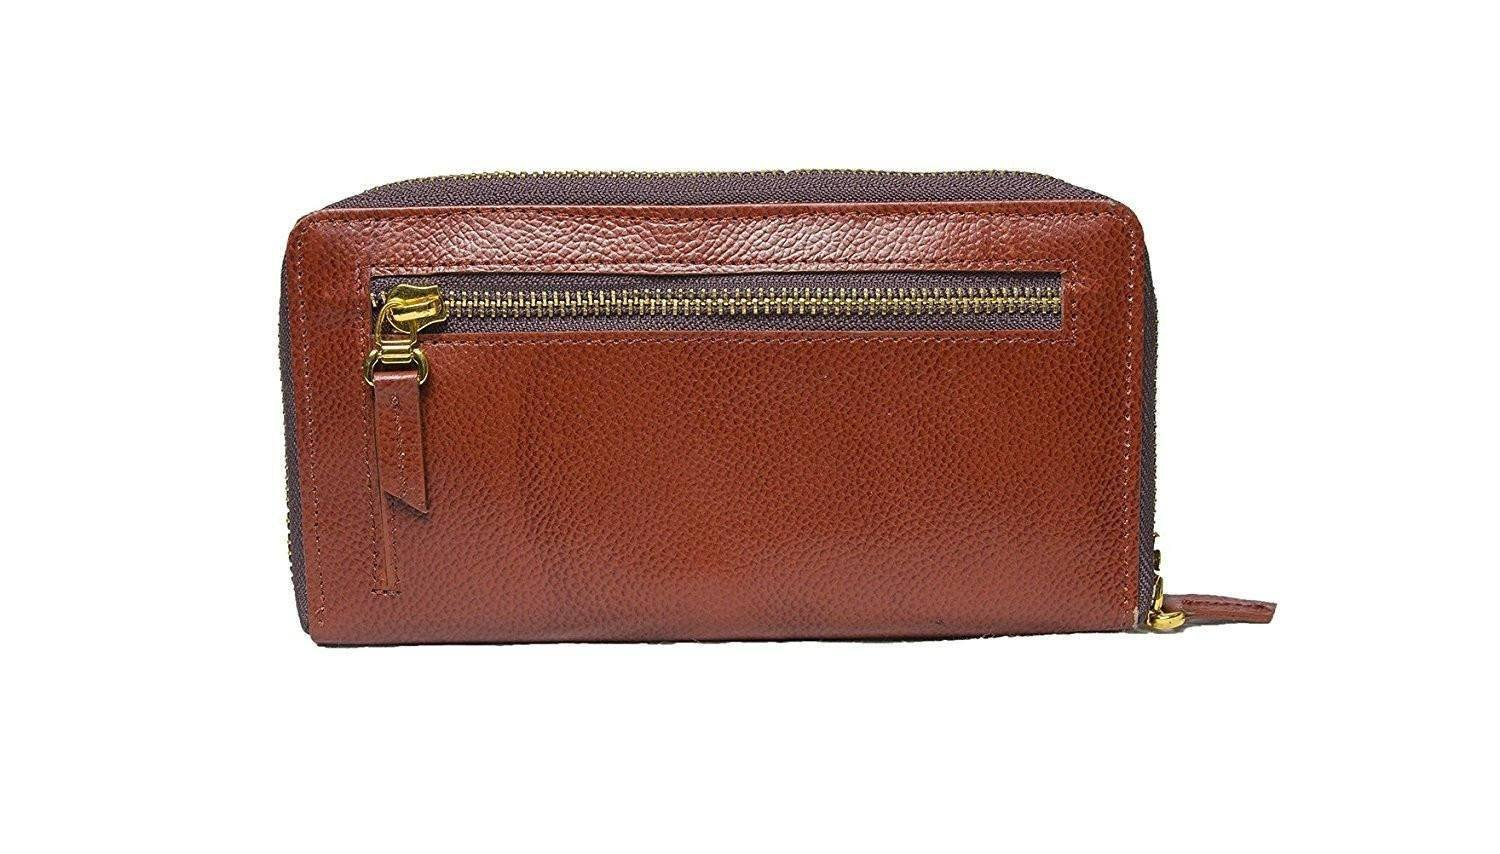 Leather - IN-INDIA Pure Leather Ladies/ Girls Daily Use Black Smart Classy Stylish Clutch / Purse